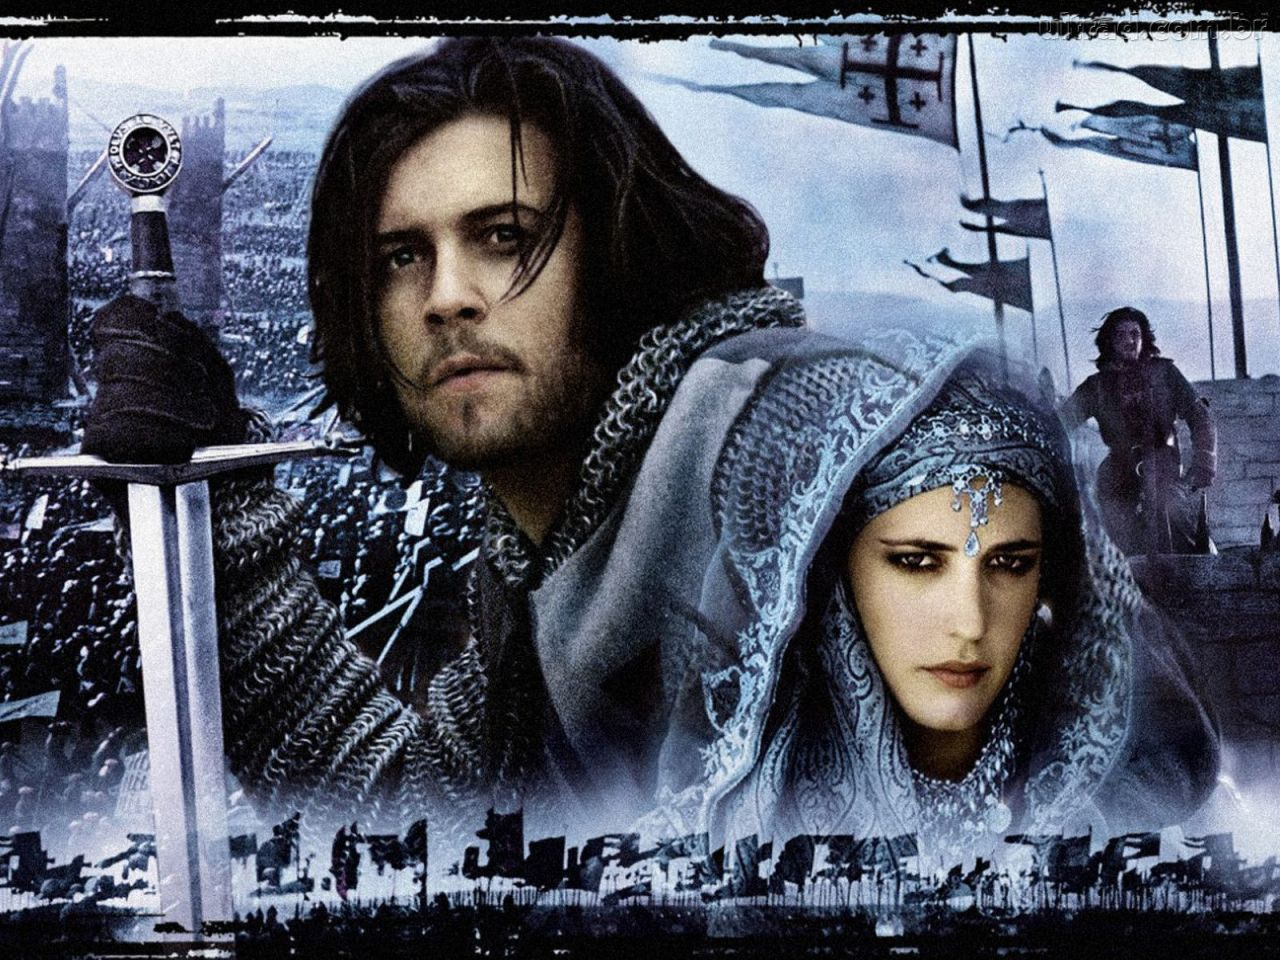 movie analysis kingdom of heaven part Keywords: ridley scott kingdom of heaven kingdom of heaven by ridley scott is a modern film about the crusades, set in 1184 centered on balian of ibelin the film is presented as a conscious piece of historical fiction and the majority of the film follows closely with historical records.